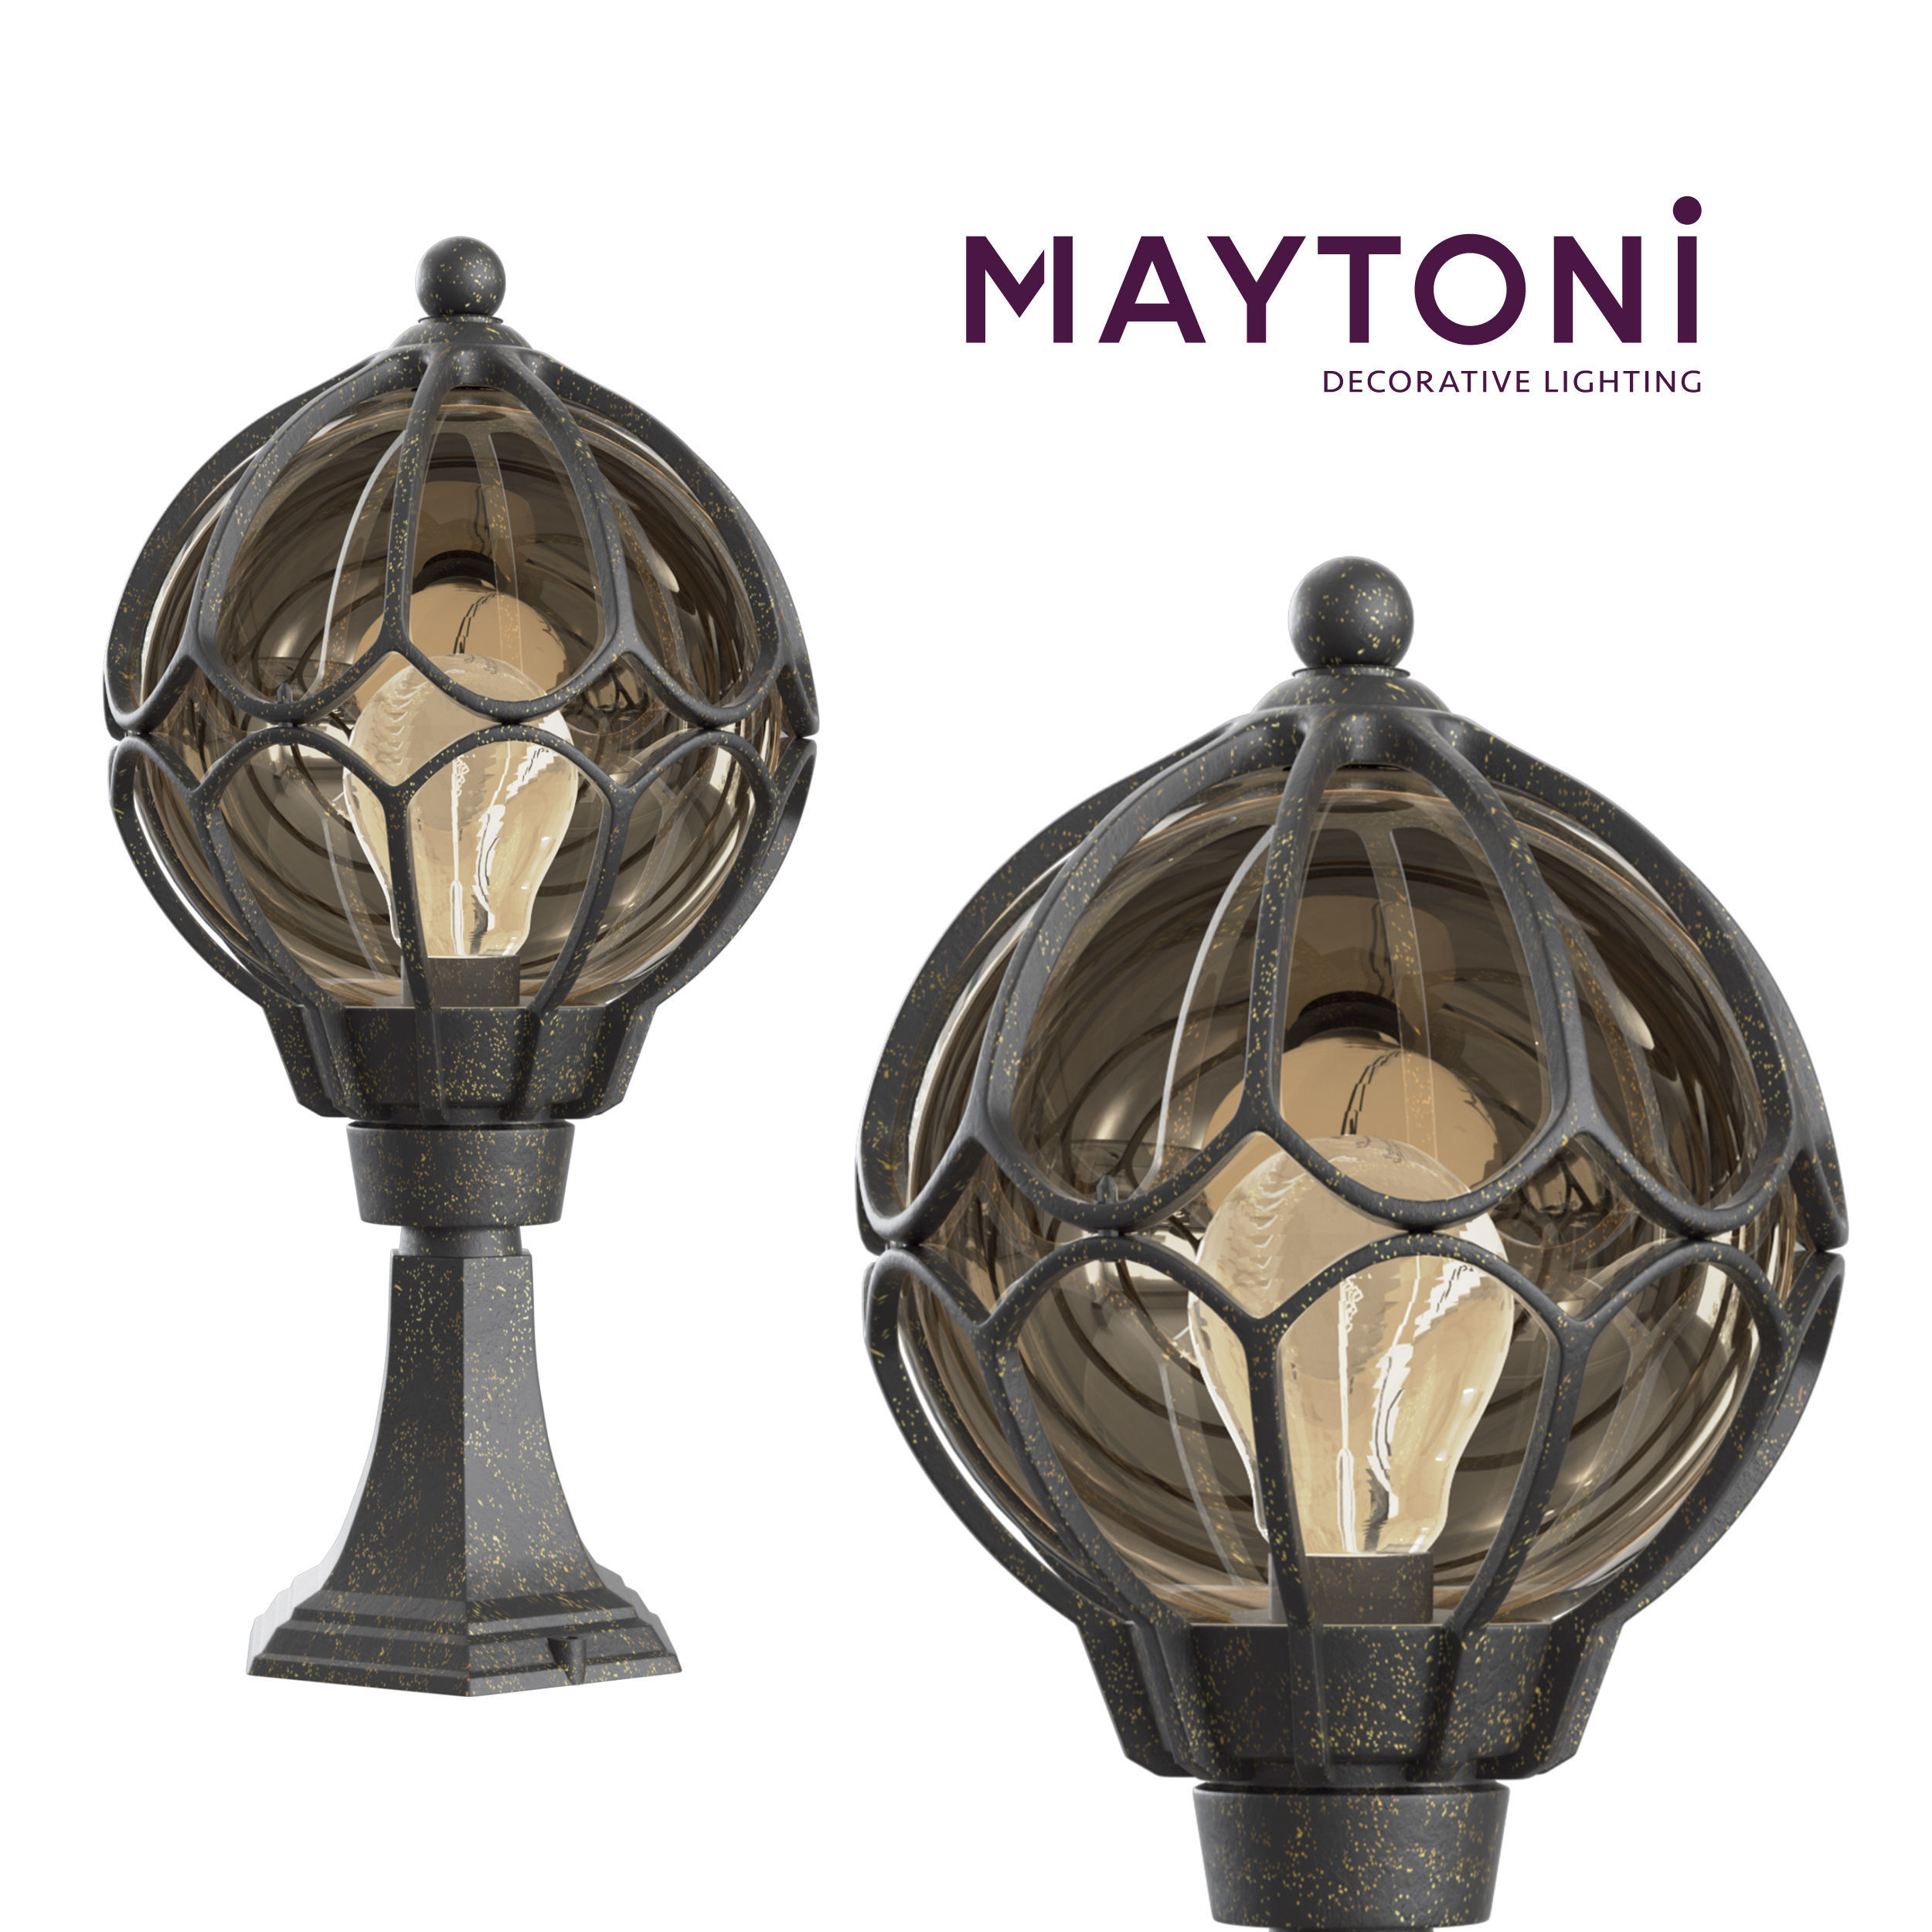 Garden Lamp 3d Model: 3D Model Wall Lamp Champs Elysees S110-45-01-R Maytoni